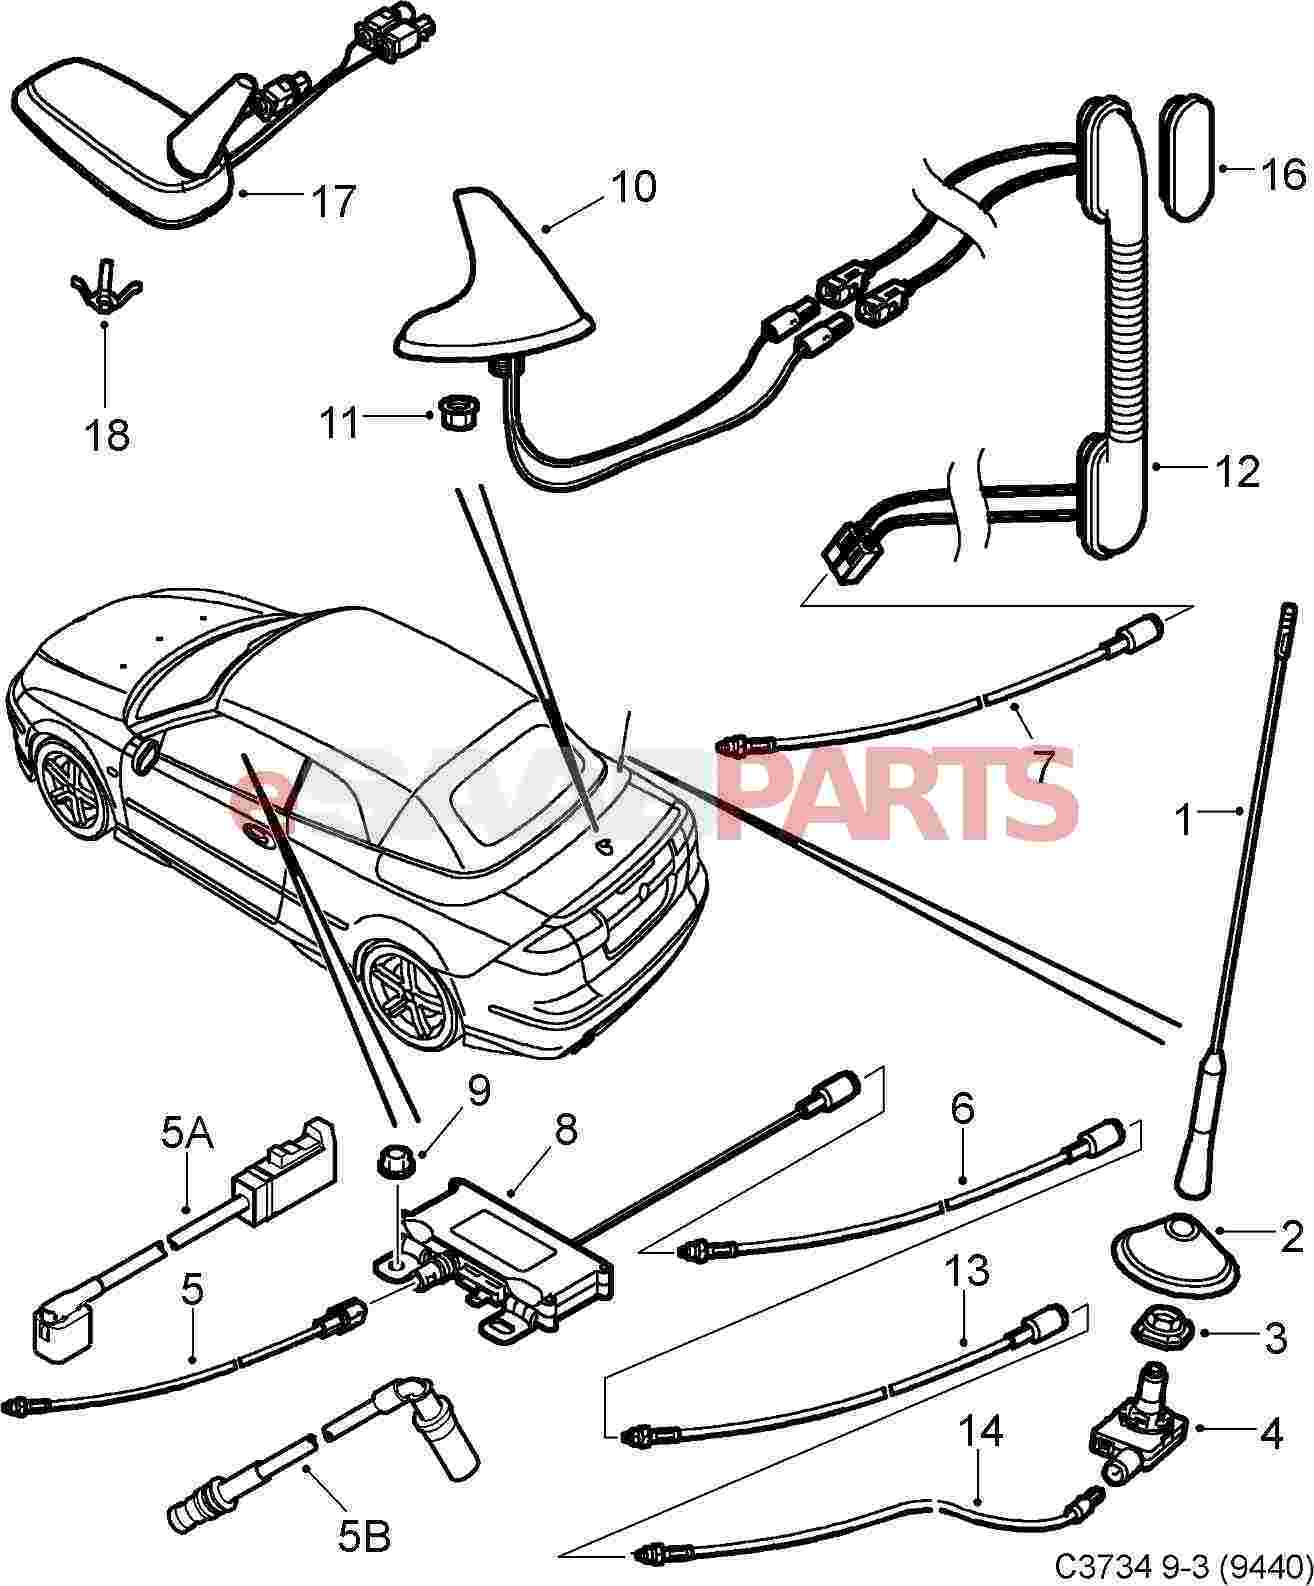 1999 saab 9 3 wiring diagram 1965 mustang ignition 99 parts  for free